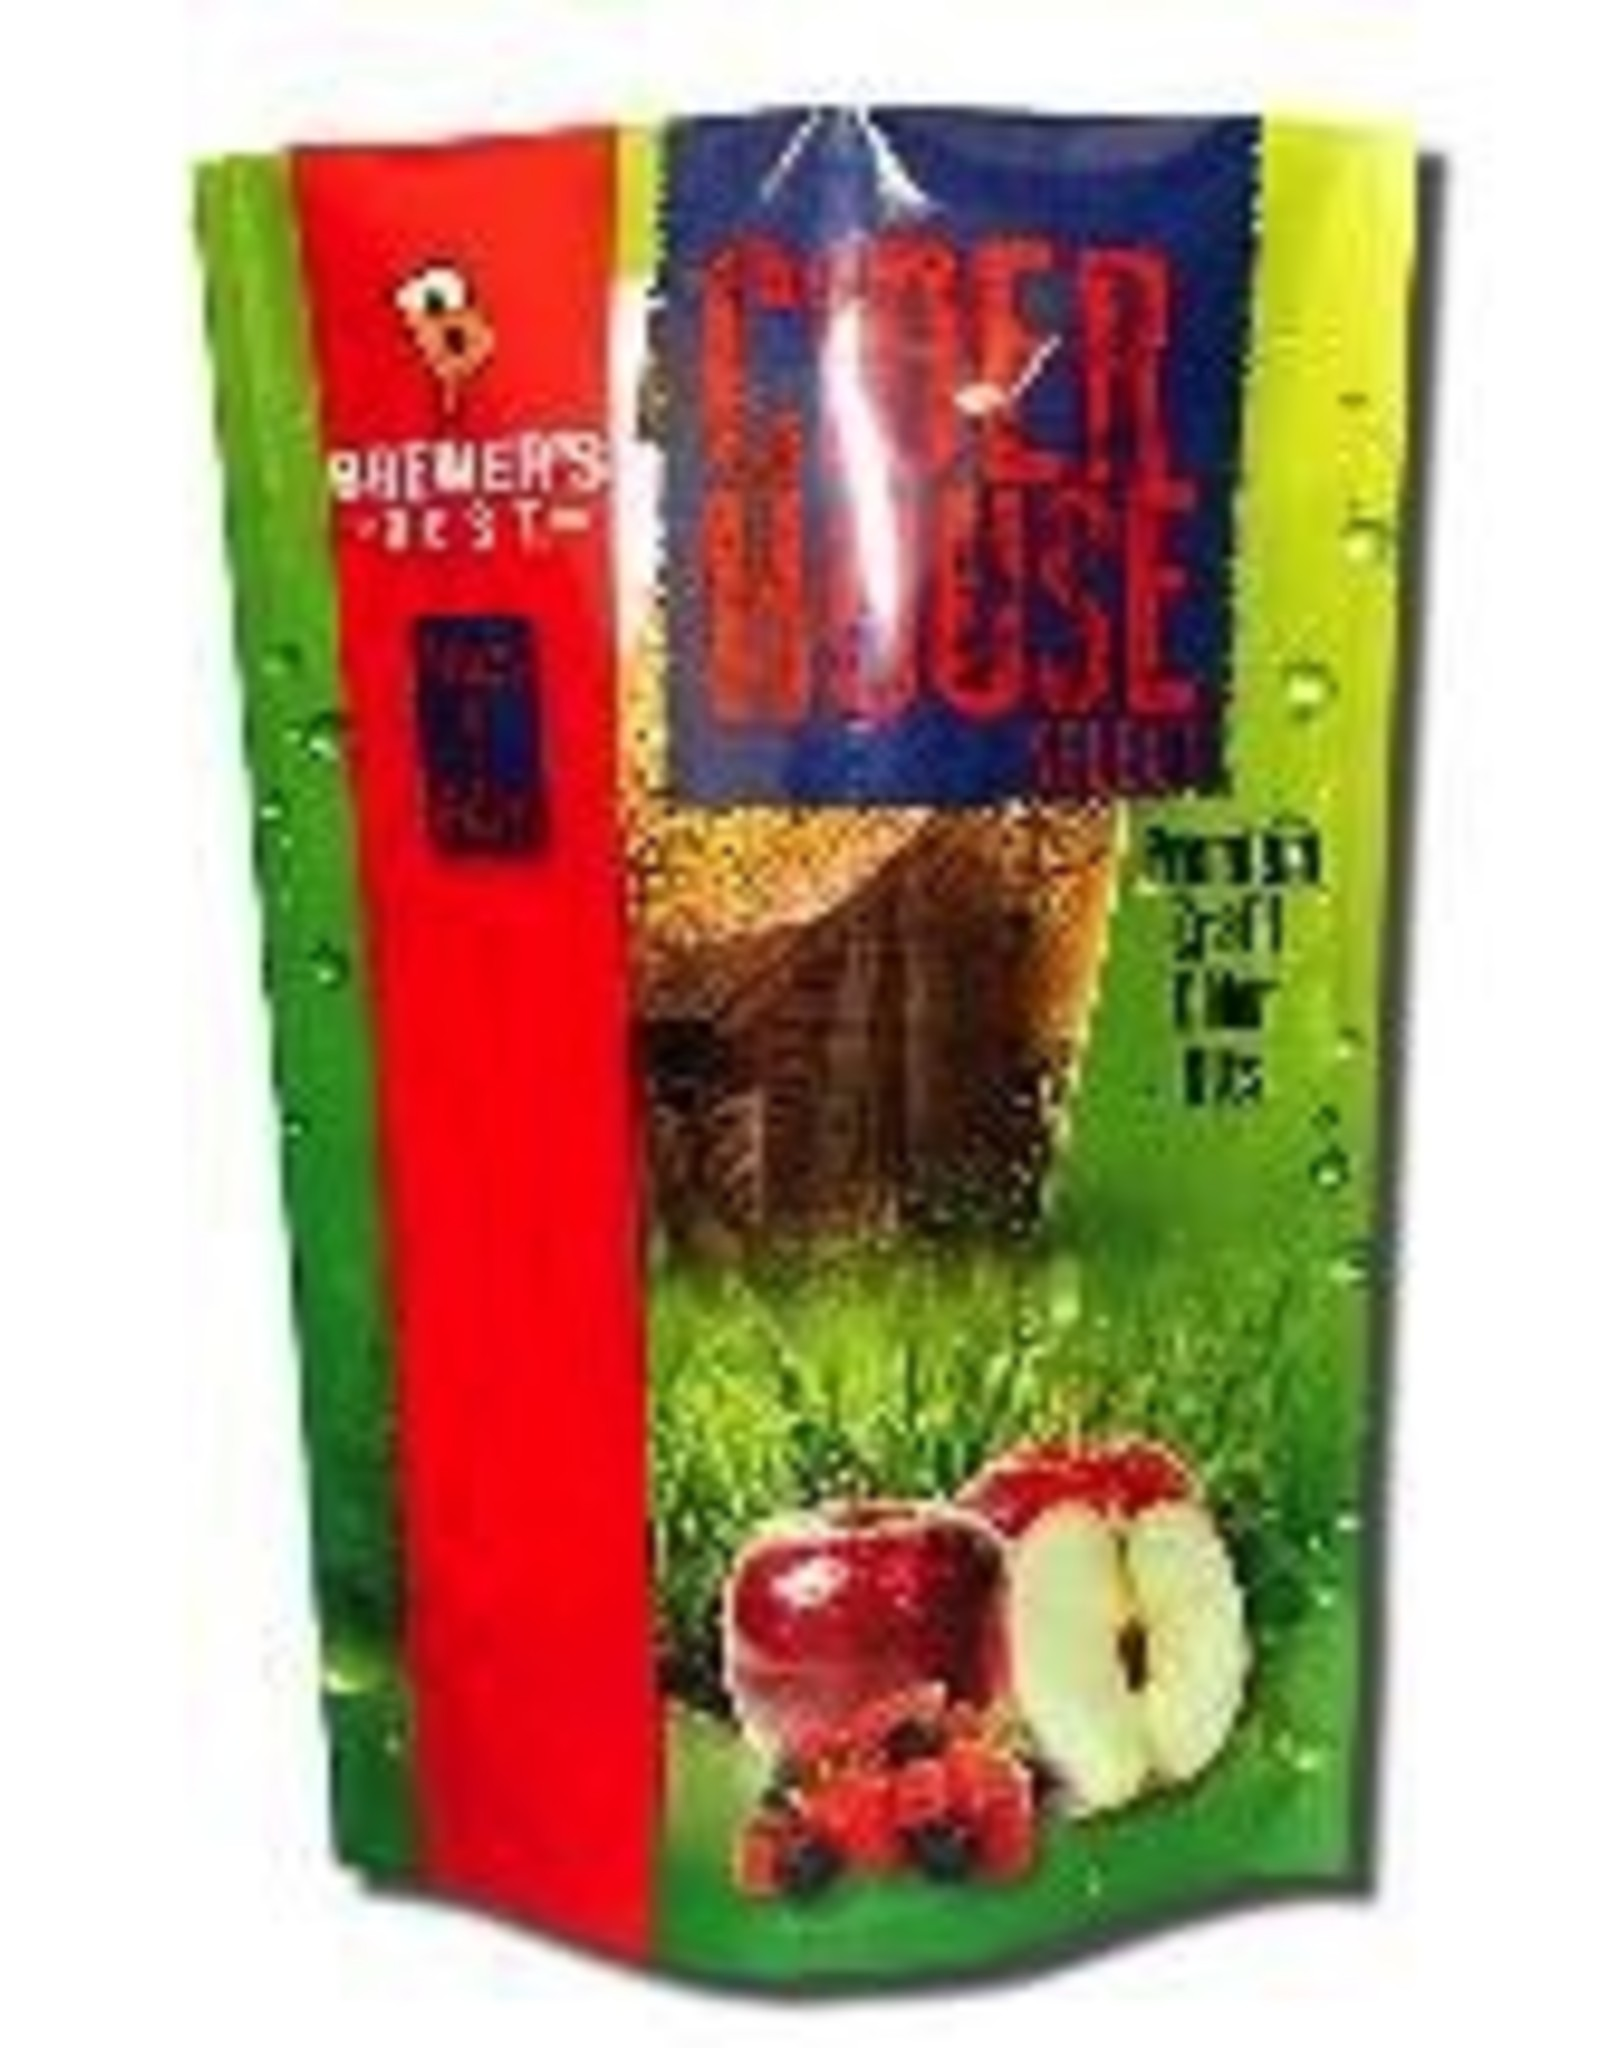 BREWERS BEST CIDER HOUSE SELECT MIXED BERRY CIDER MAKING KIT